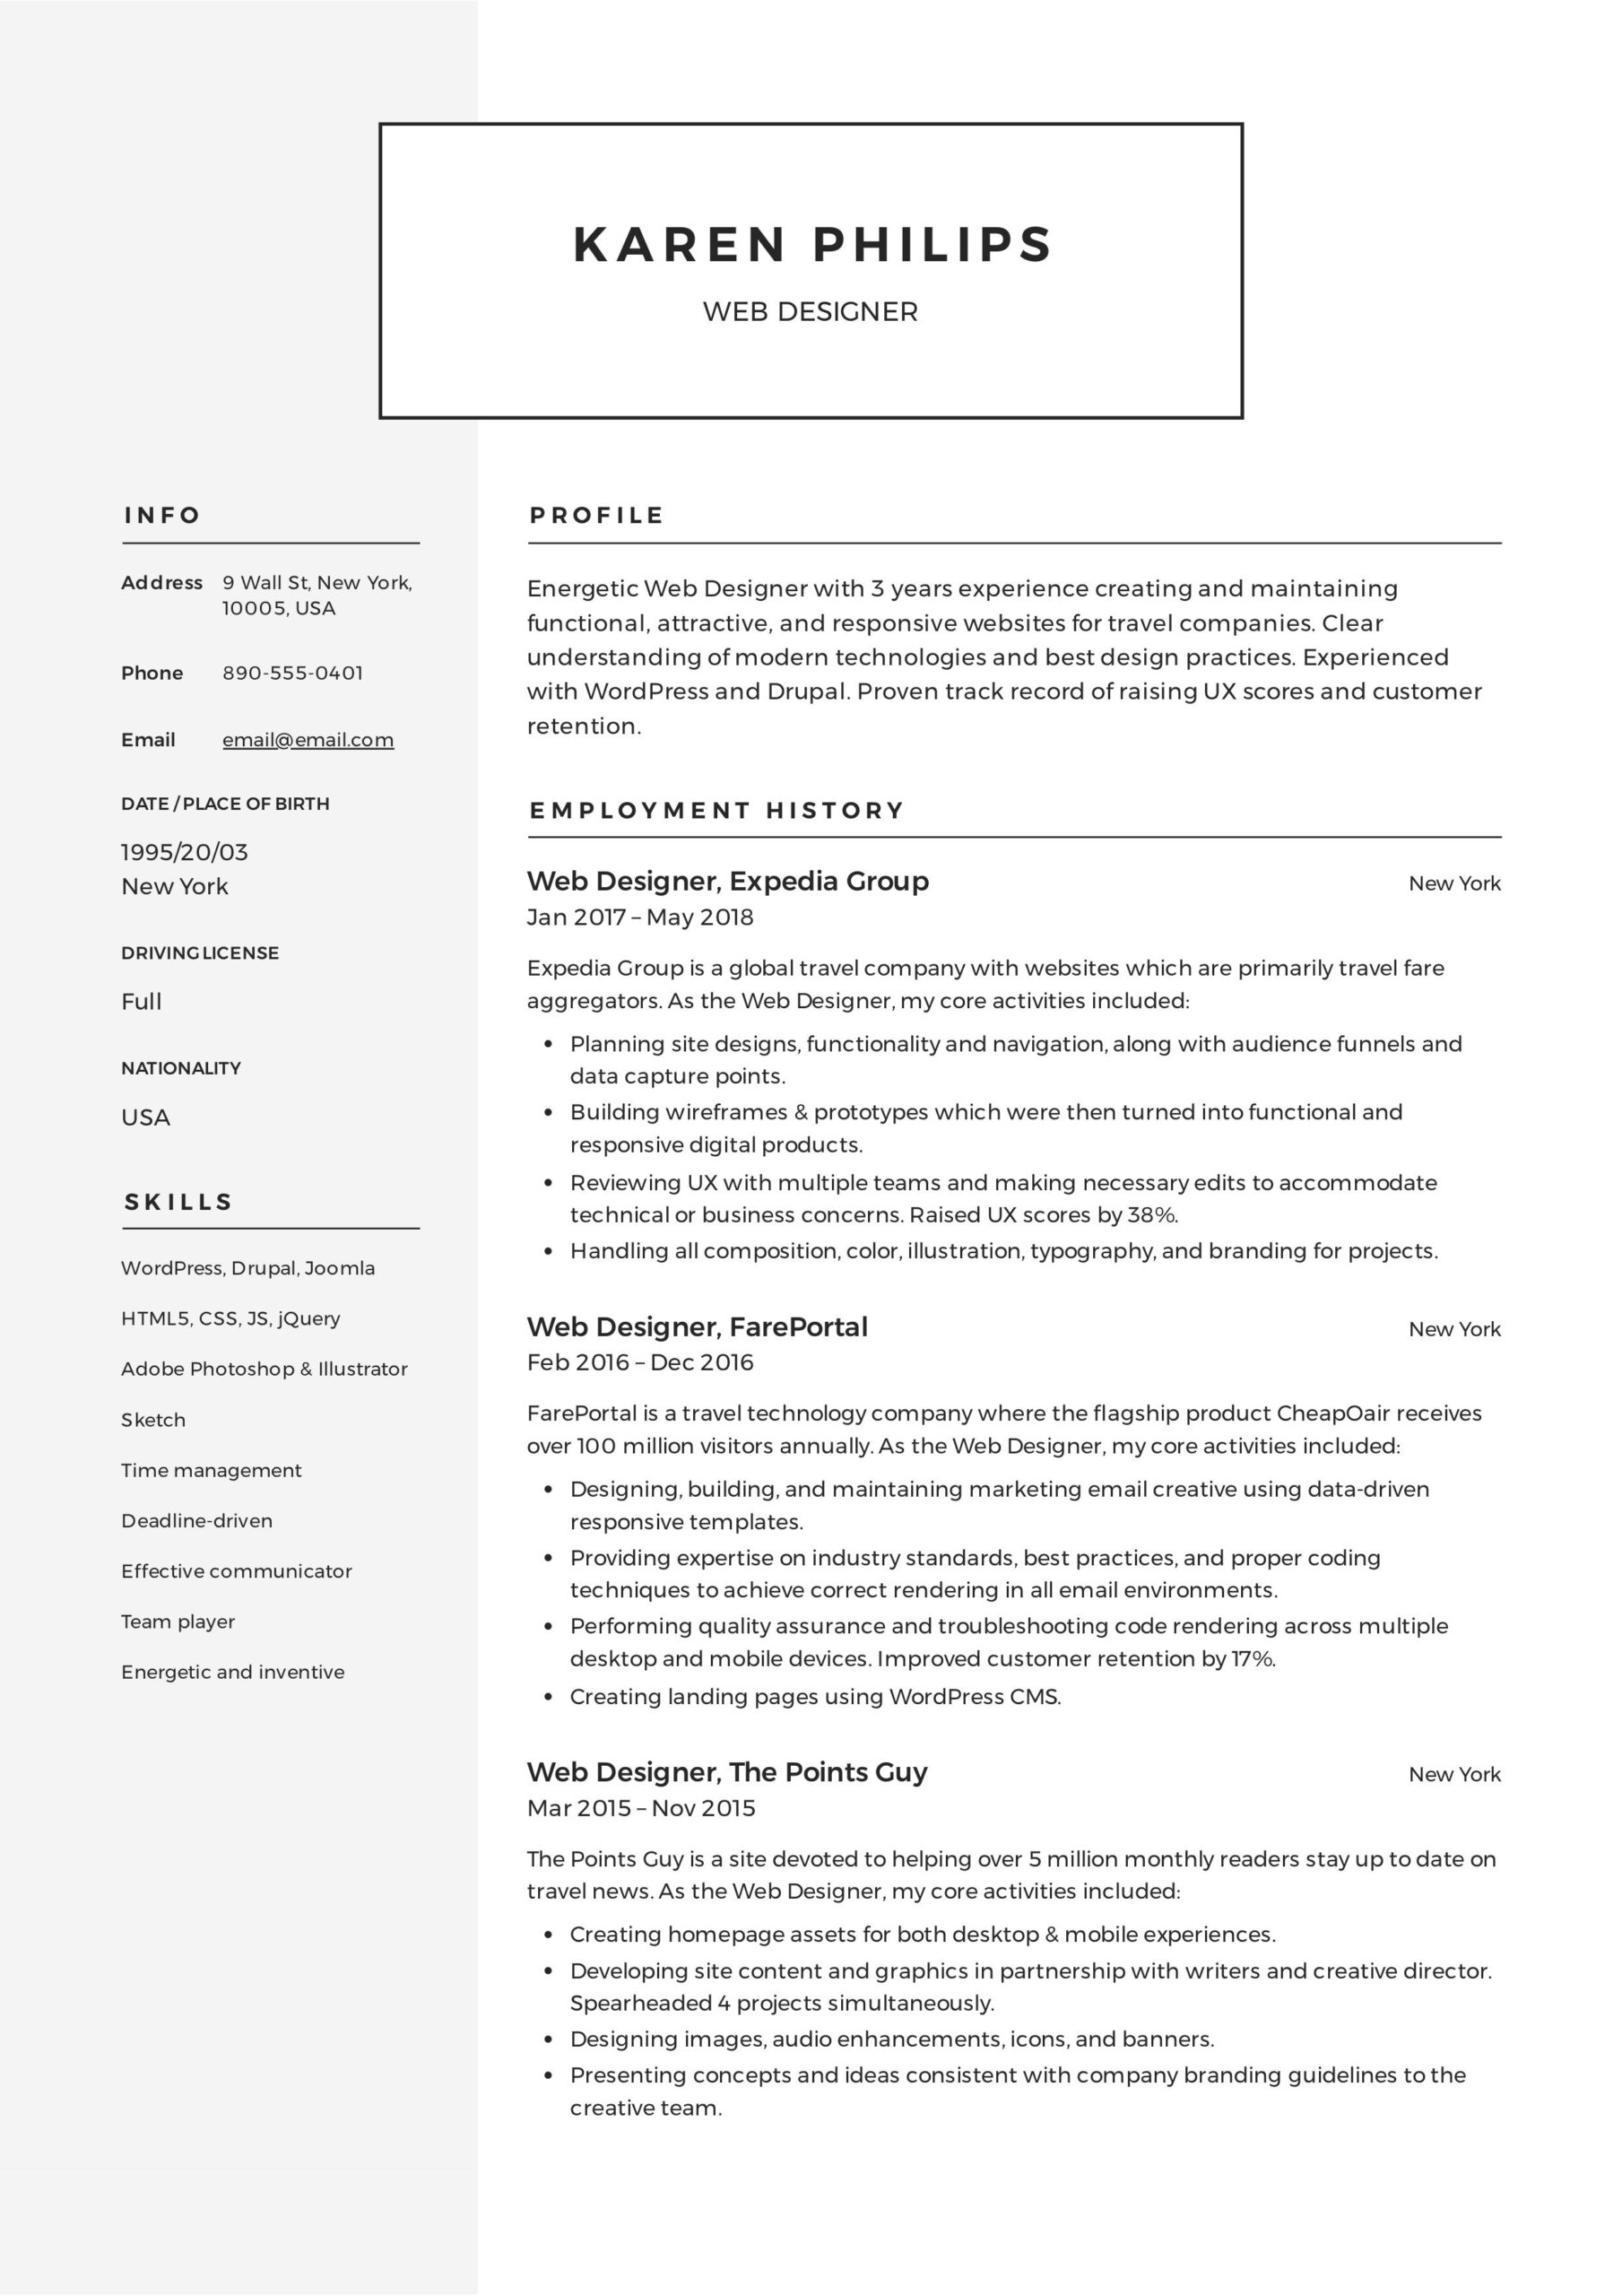 web designer resume example template free examples job format food service samples office Resume Web Designer Resume Format Free Download